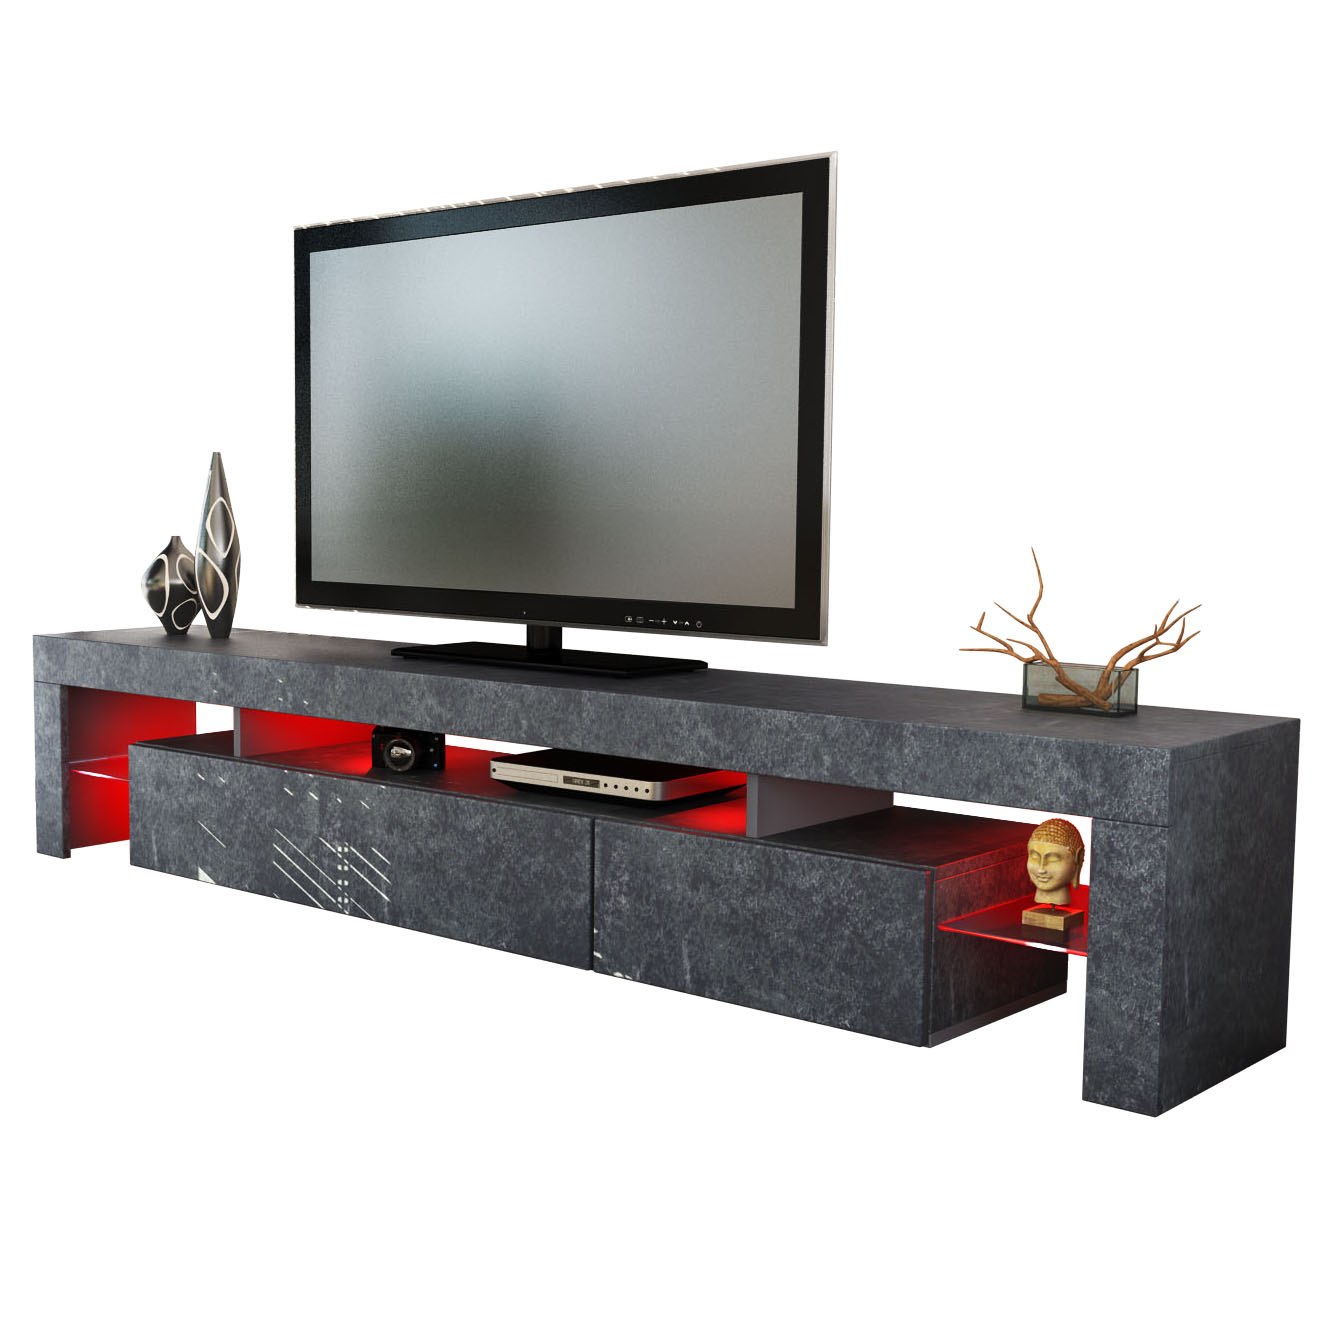 tv board lowboard kommode tisch rack sideboard lima in moderner schieferoptik ebay. Black Bedroom Furniture Sets. Home Design Ideas